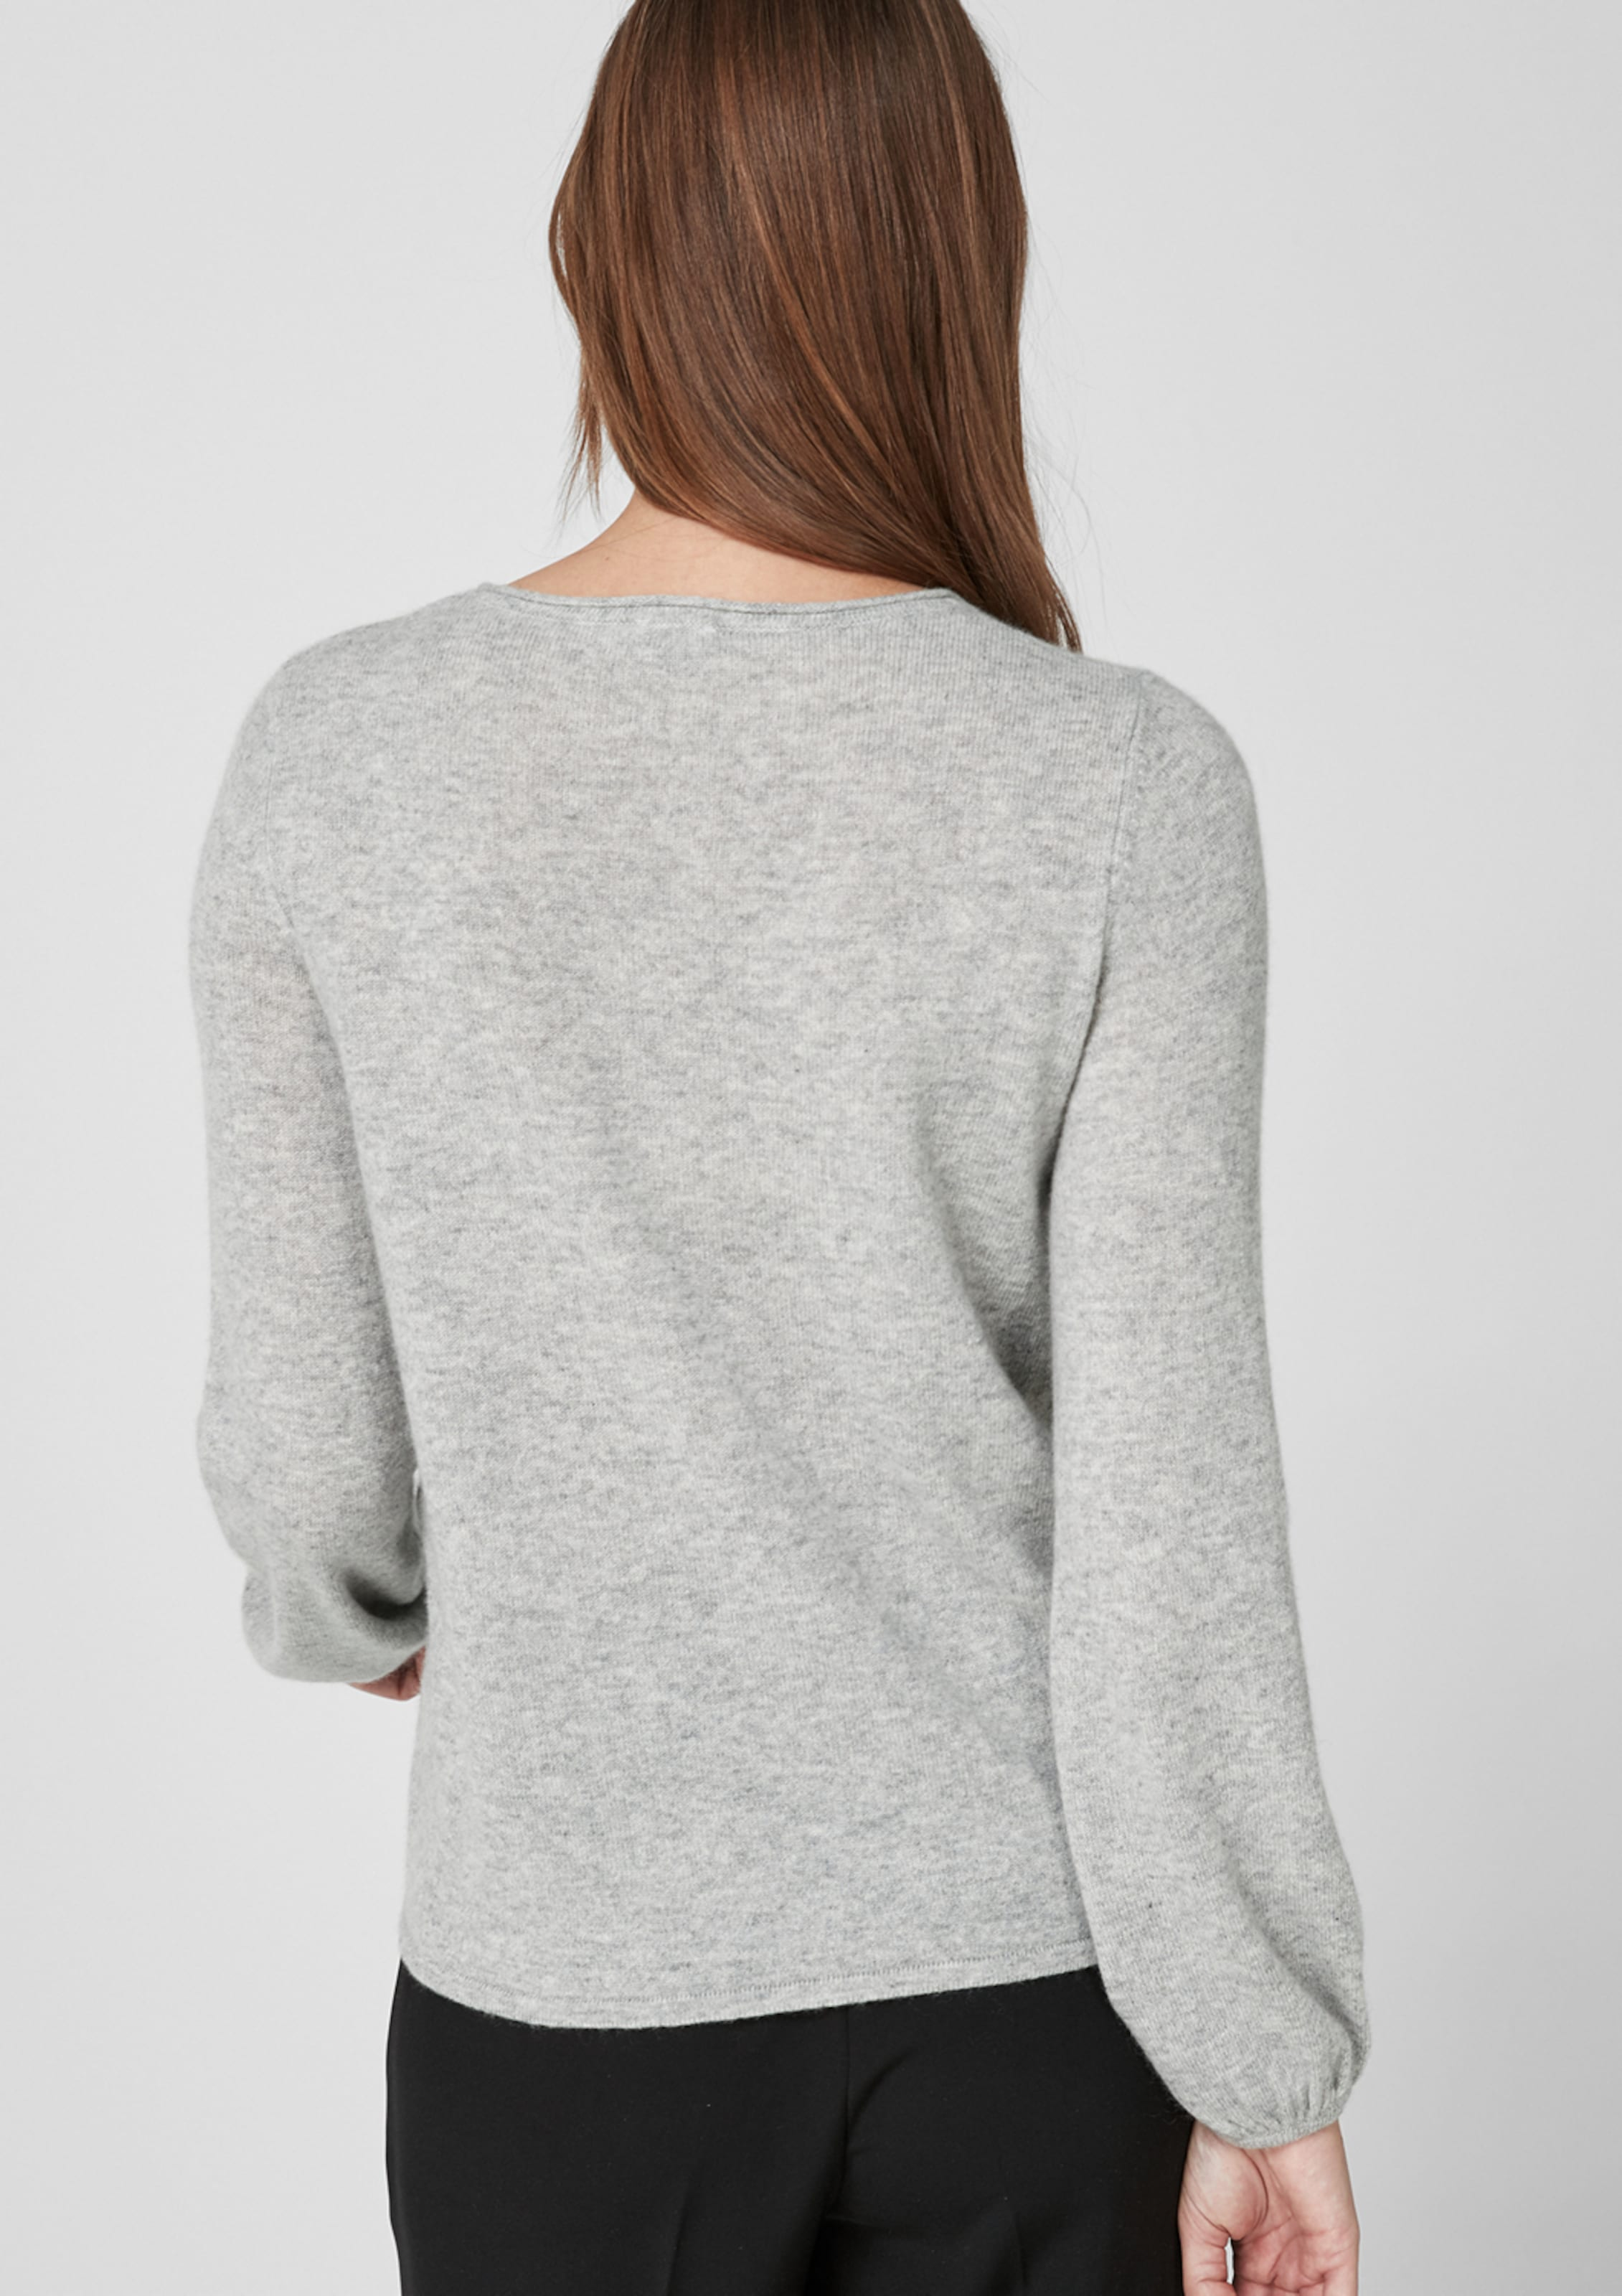 S oliver Label Pullover Black In Graumeliert roeWdxBQCE